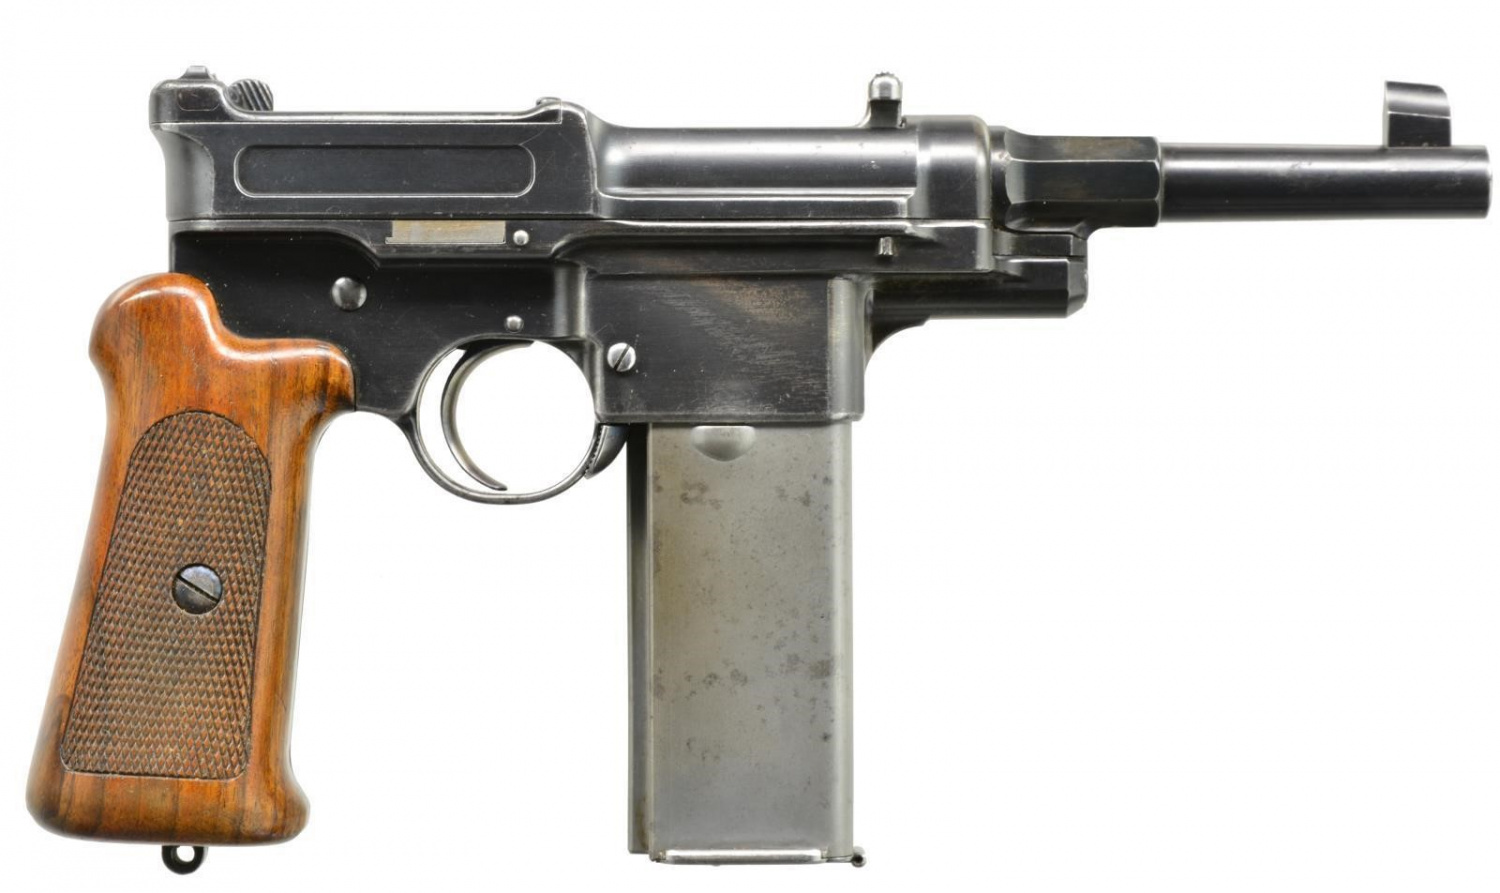 Top 5 Most Expensive Firearms Sold in Spring 2020 POULIN Firearms Auction - Mauser (1)